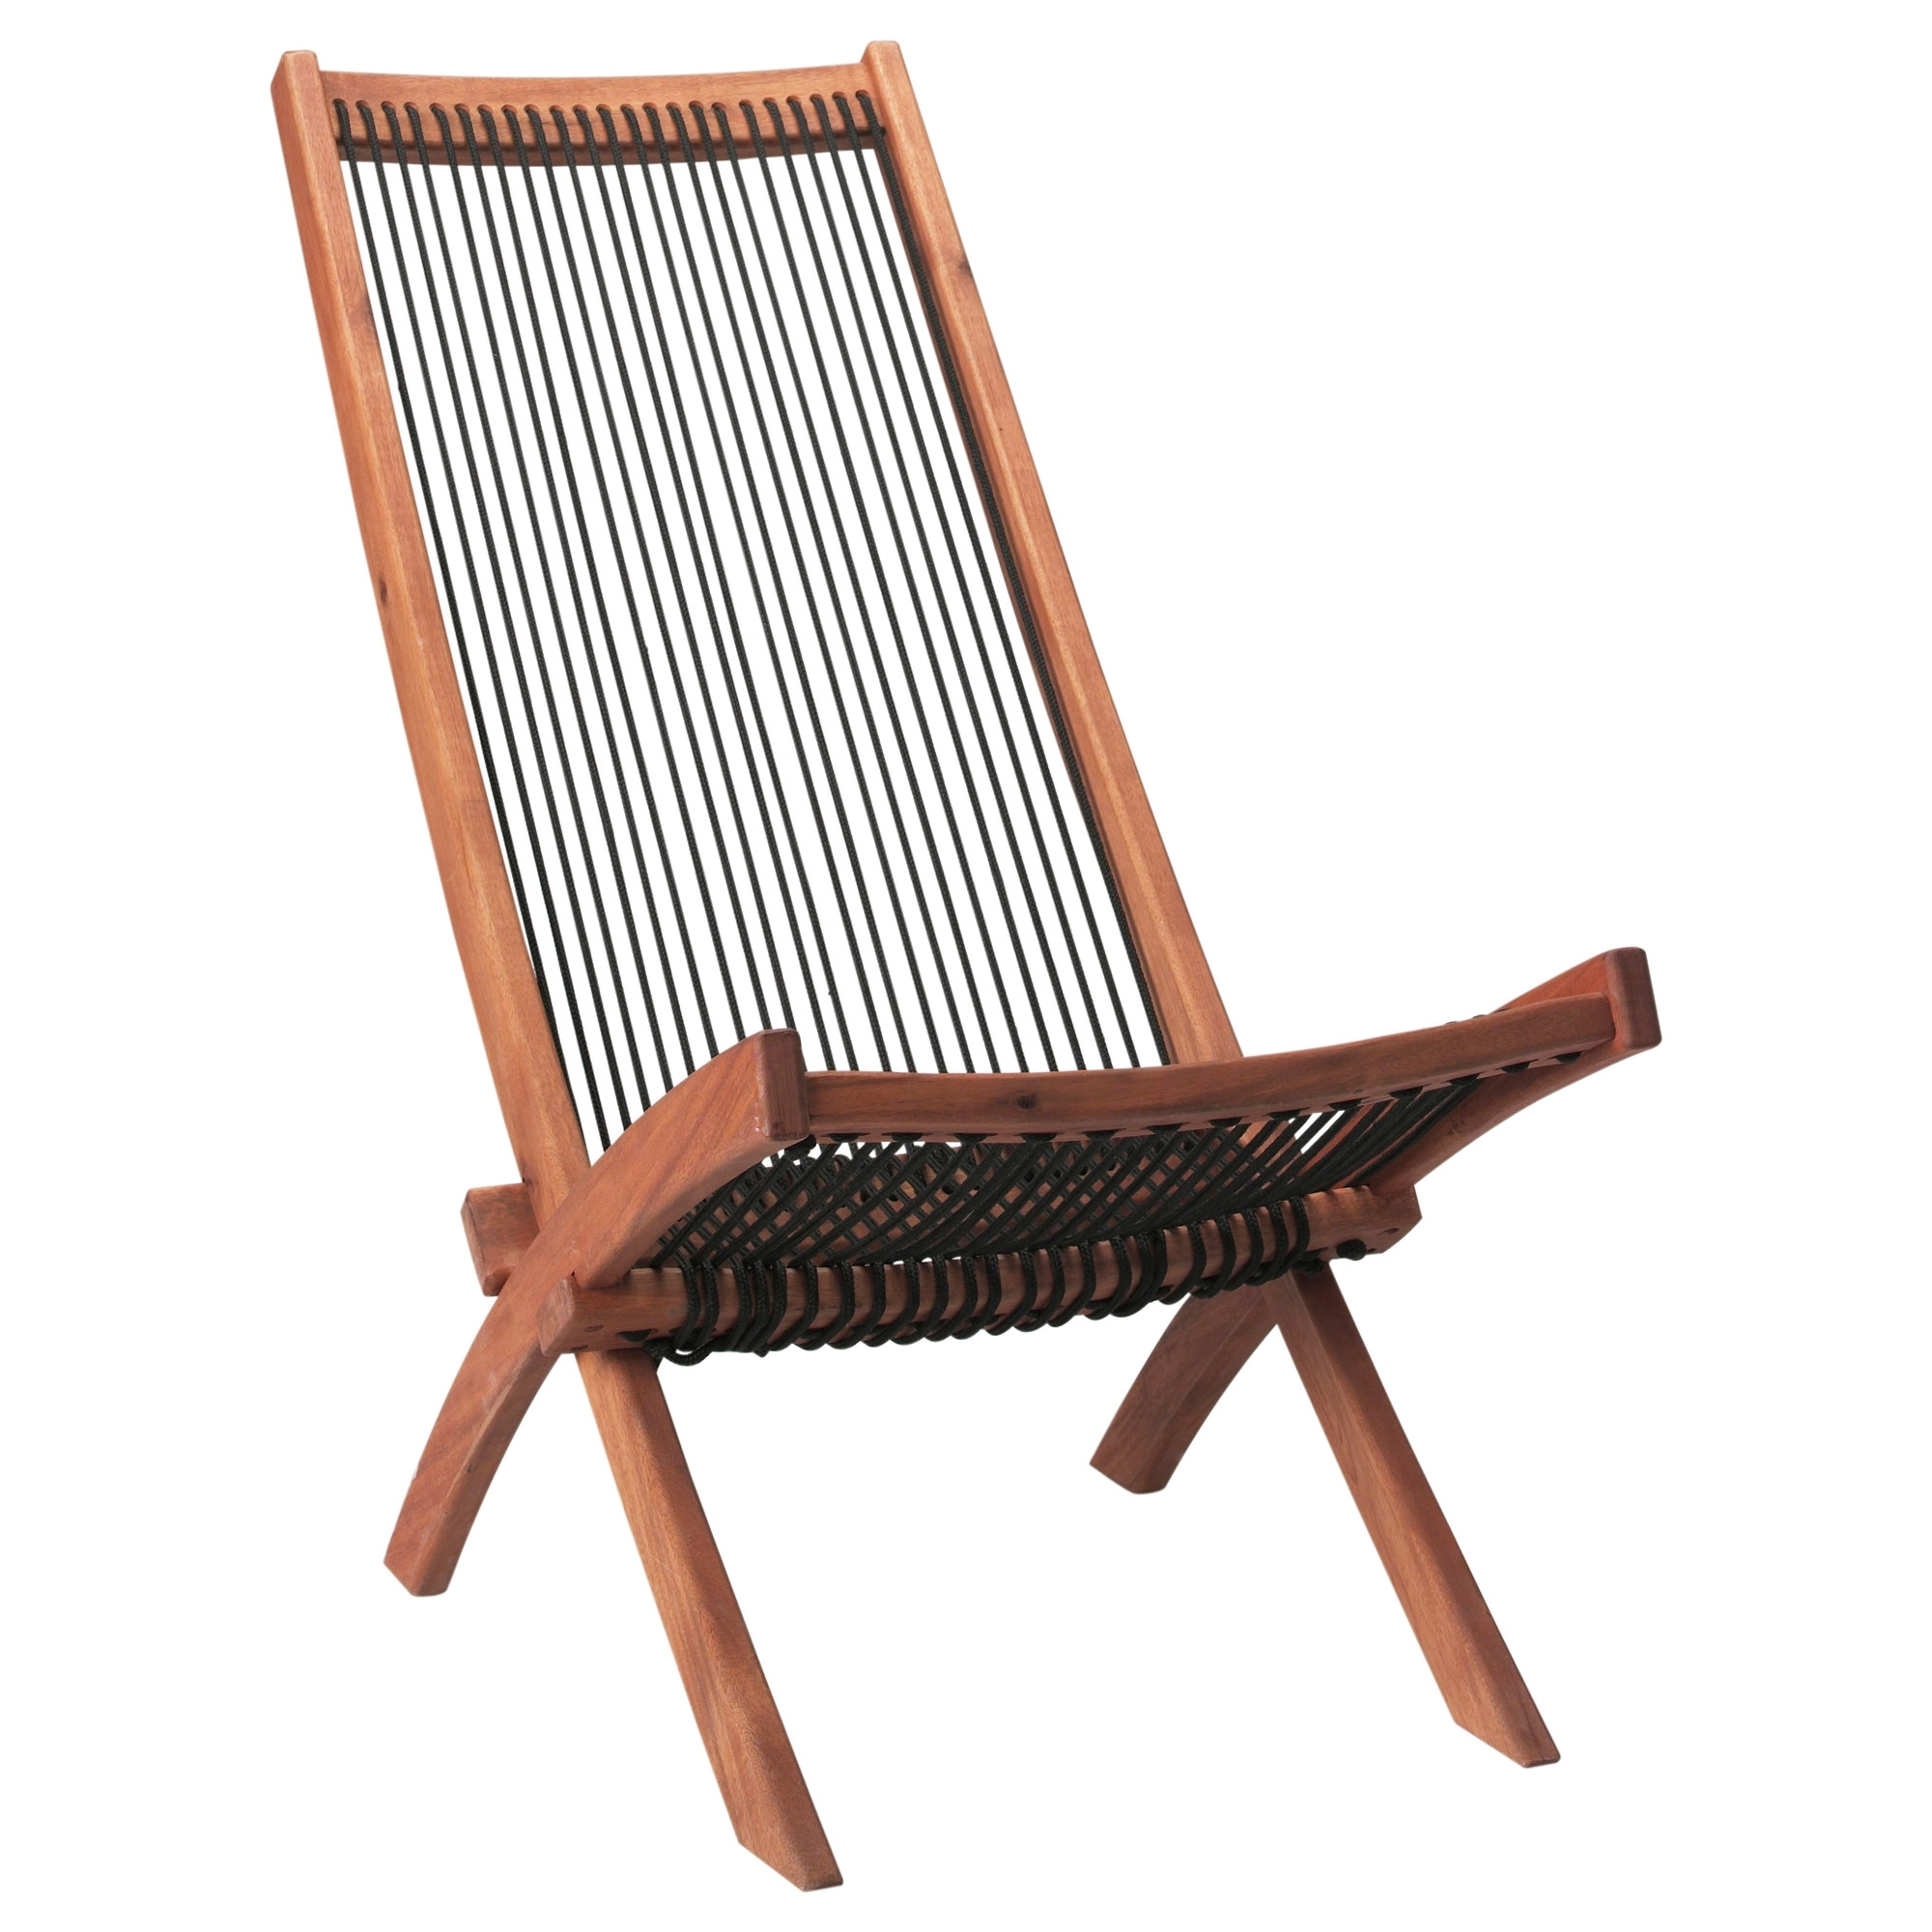 Most Recent Chaise Lounge Chairs For Backyard In Brommö Chaise, Outdoor – Ikea (View 8 of 15)